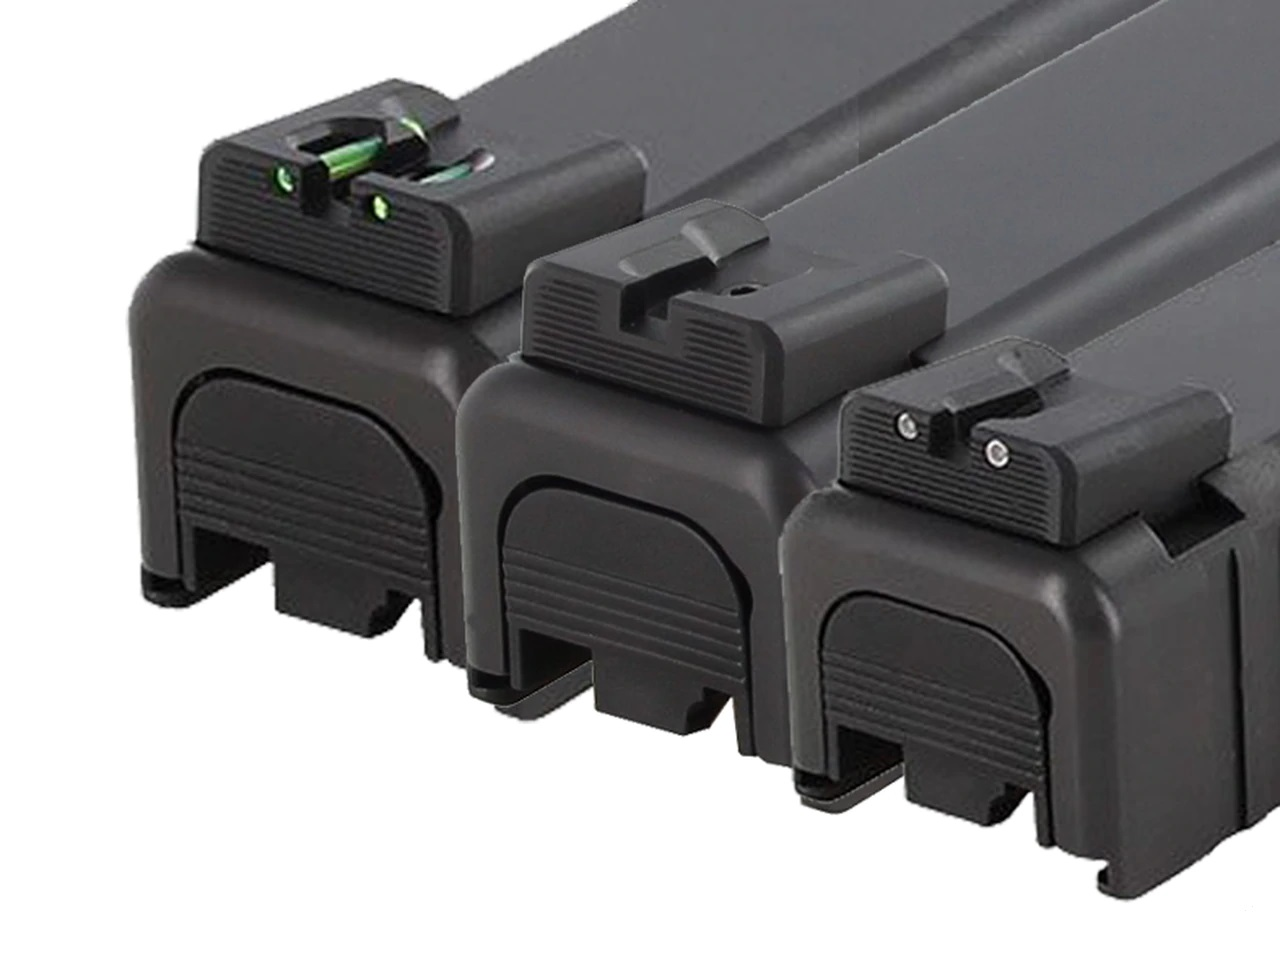 Robust rear sights suitable for carry.